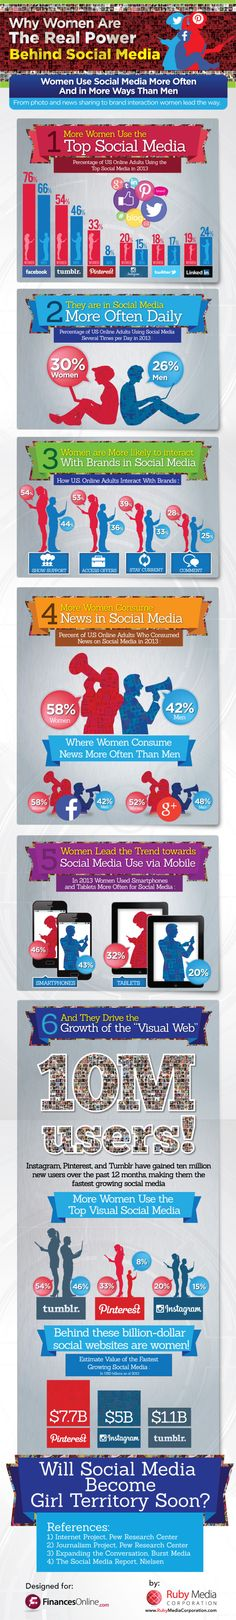 Why Women Are The Real Power Behind Social Media #infographic #infografía